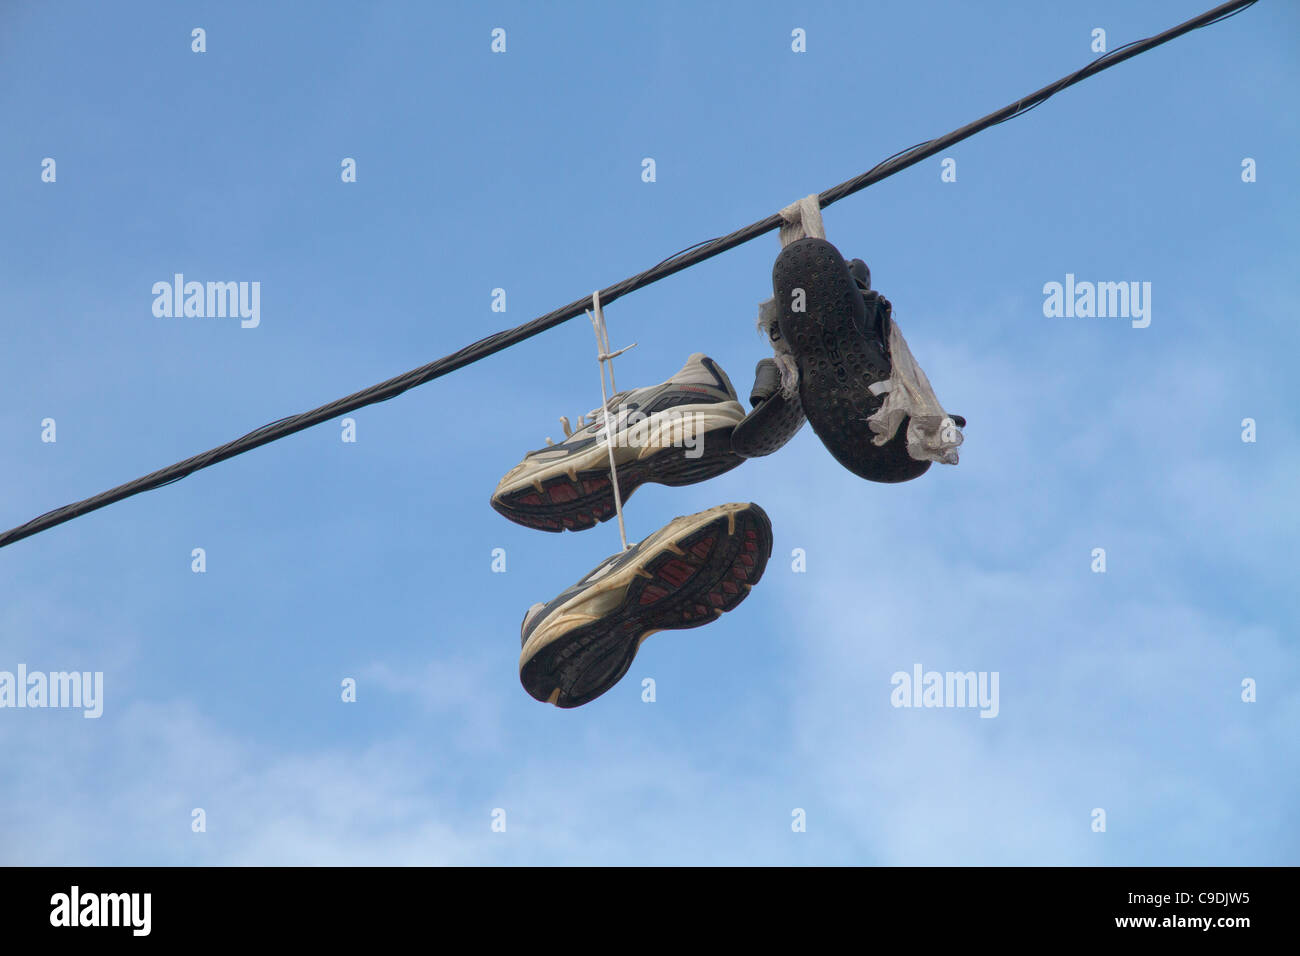 On amp; Shoes Images Cable Photos Alamy Power 4zIIqxwdg